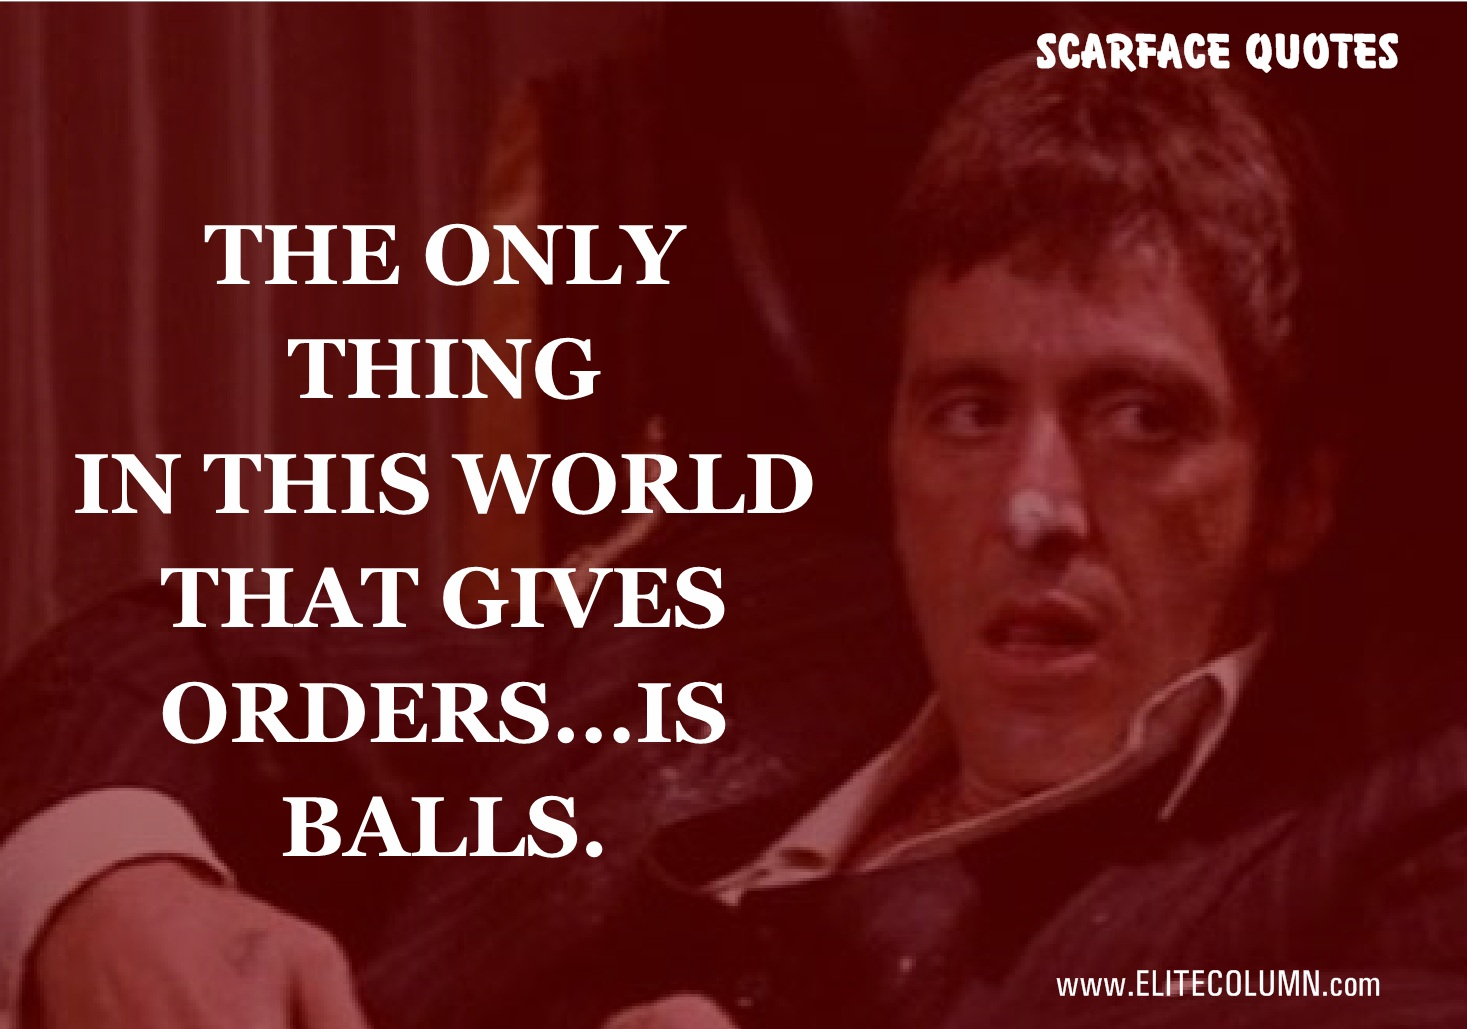 Scarface Quotes (4)